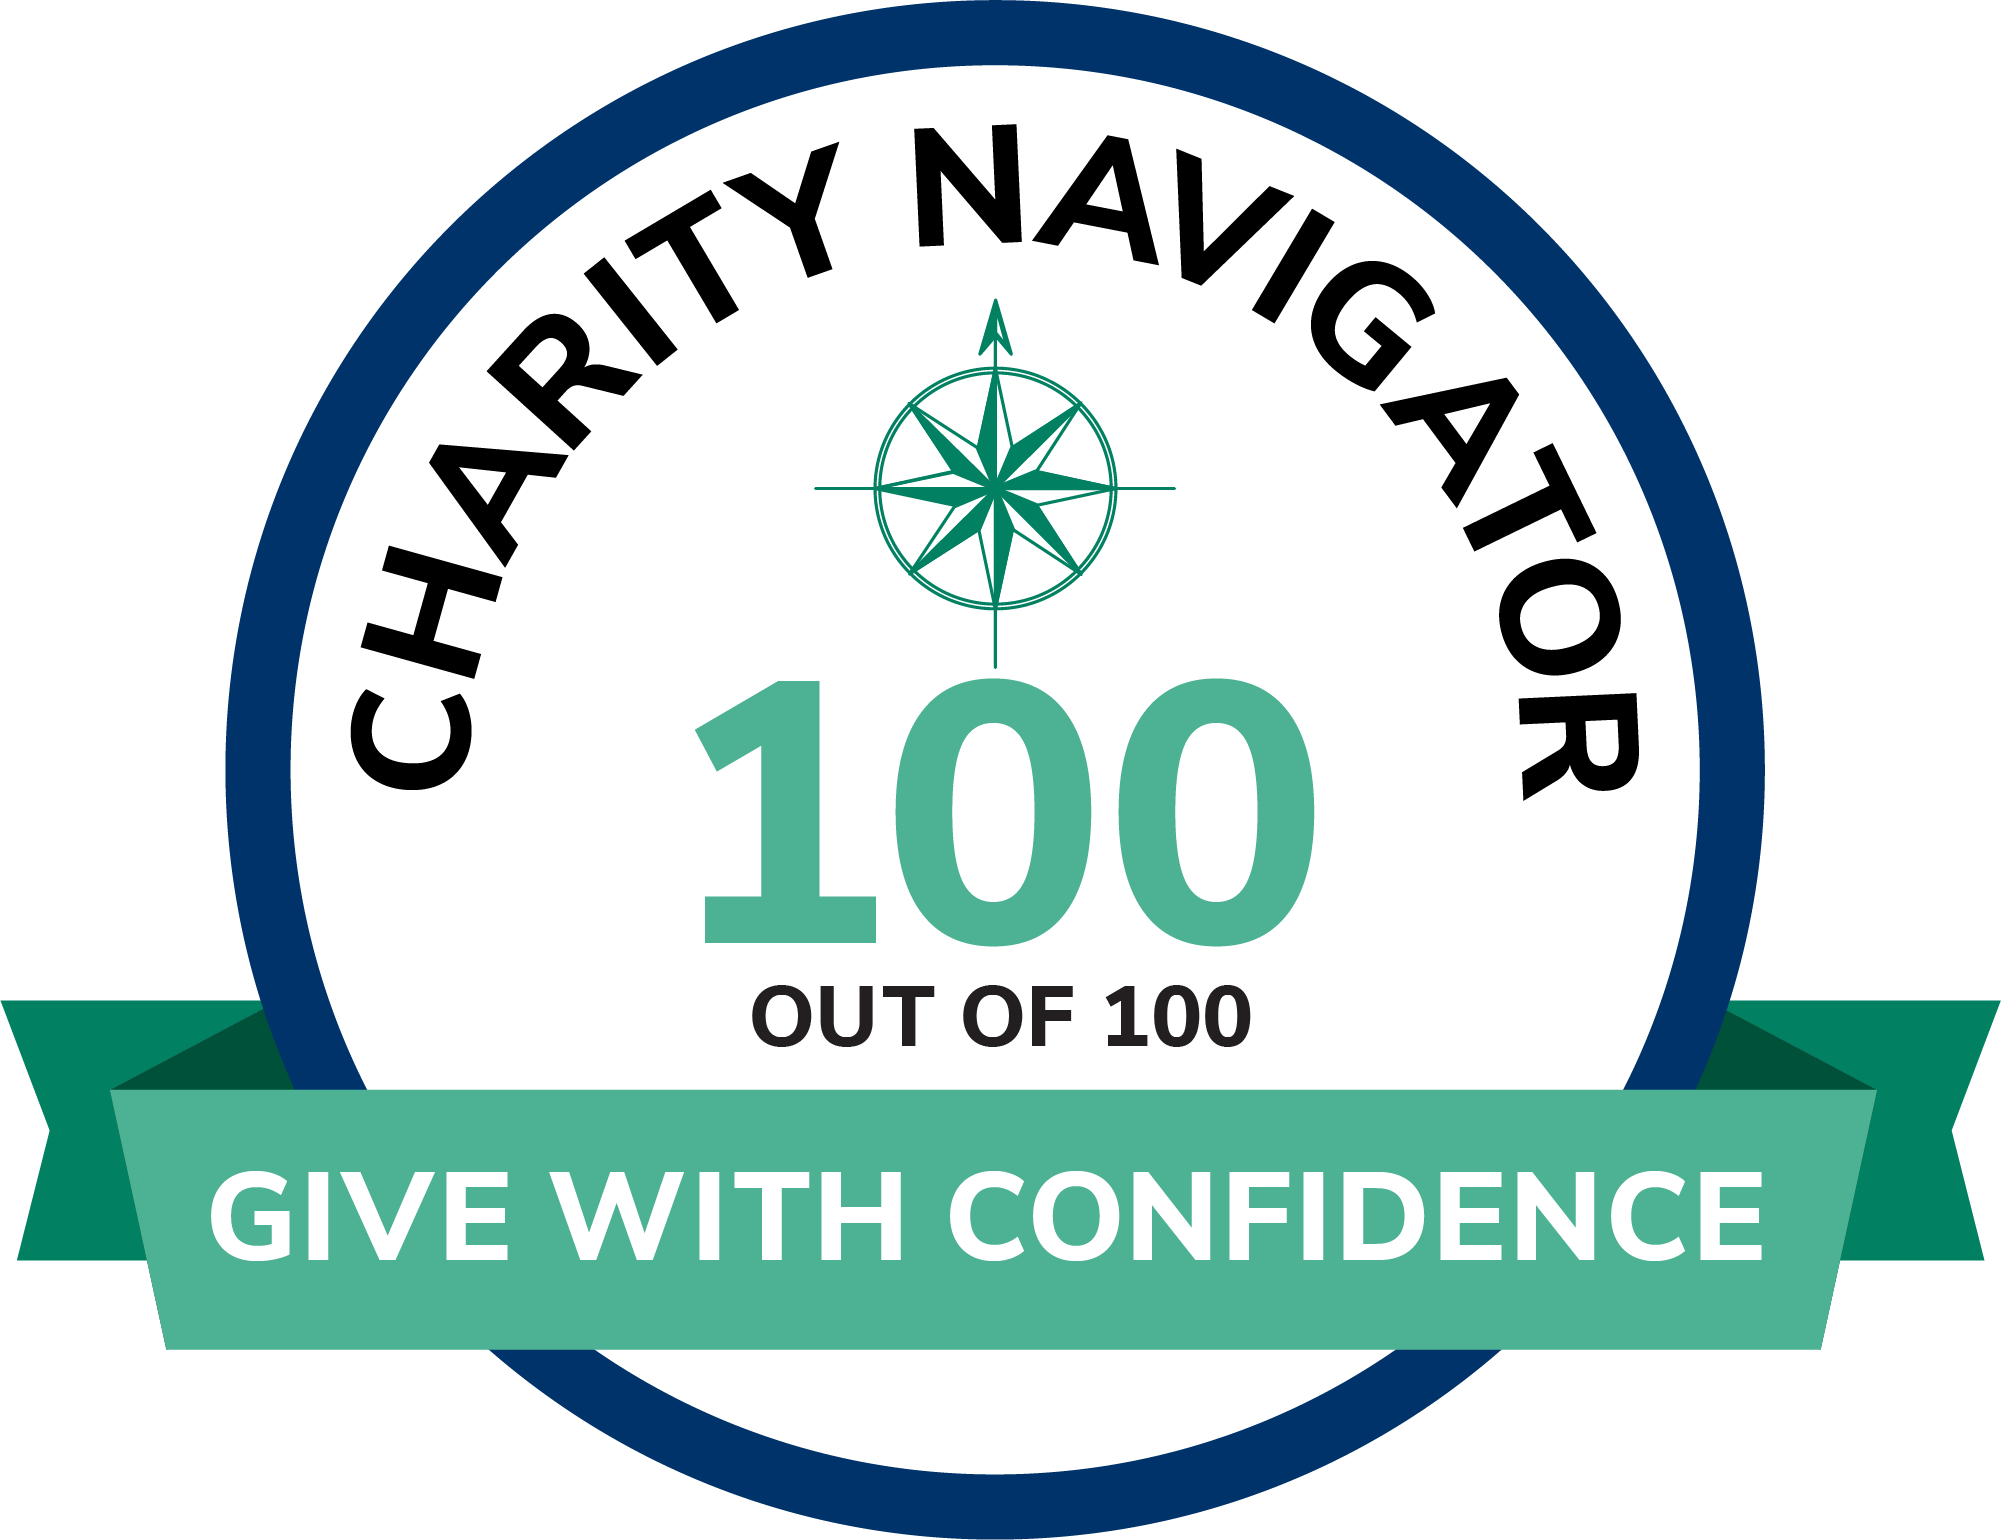 IILA is rated 100 out of 100 on Charity Navigator